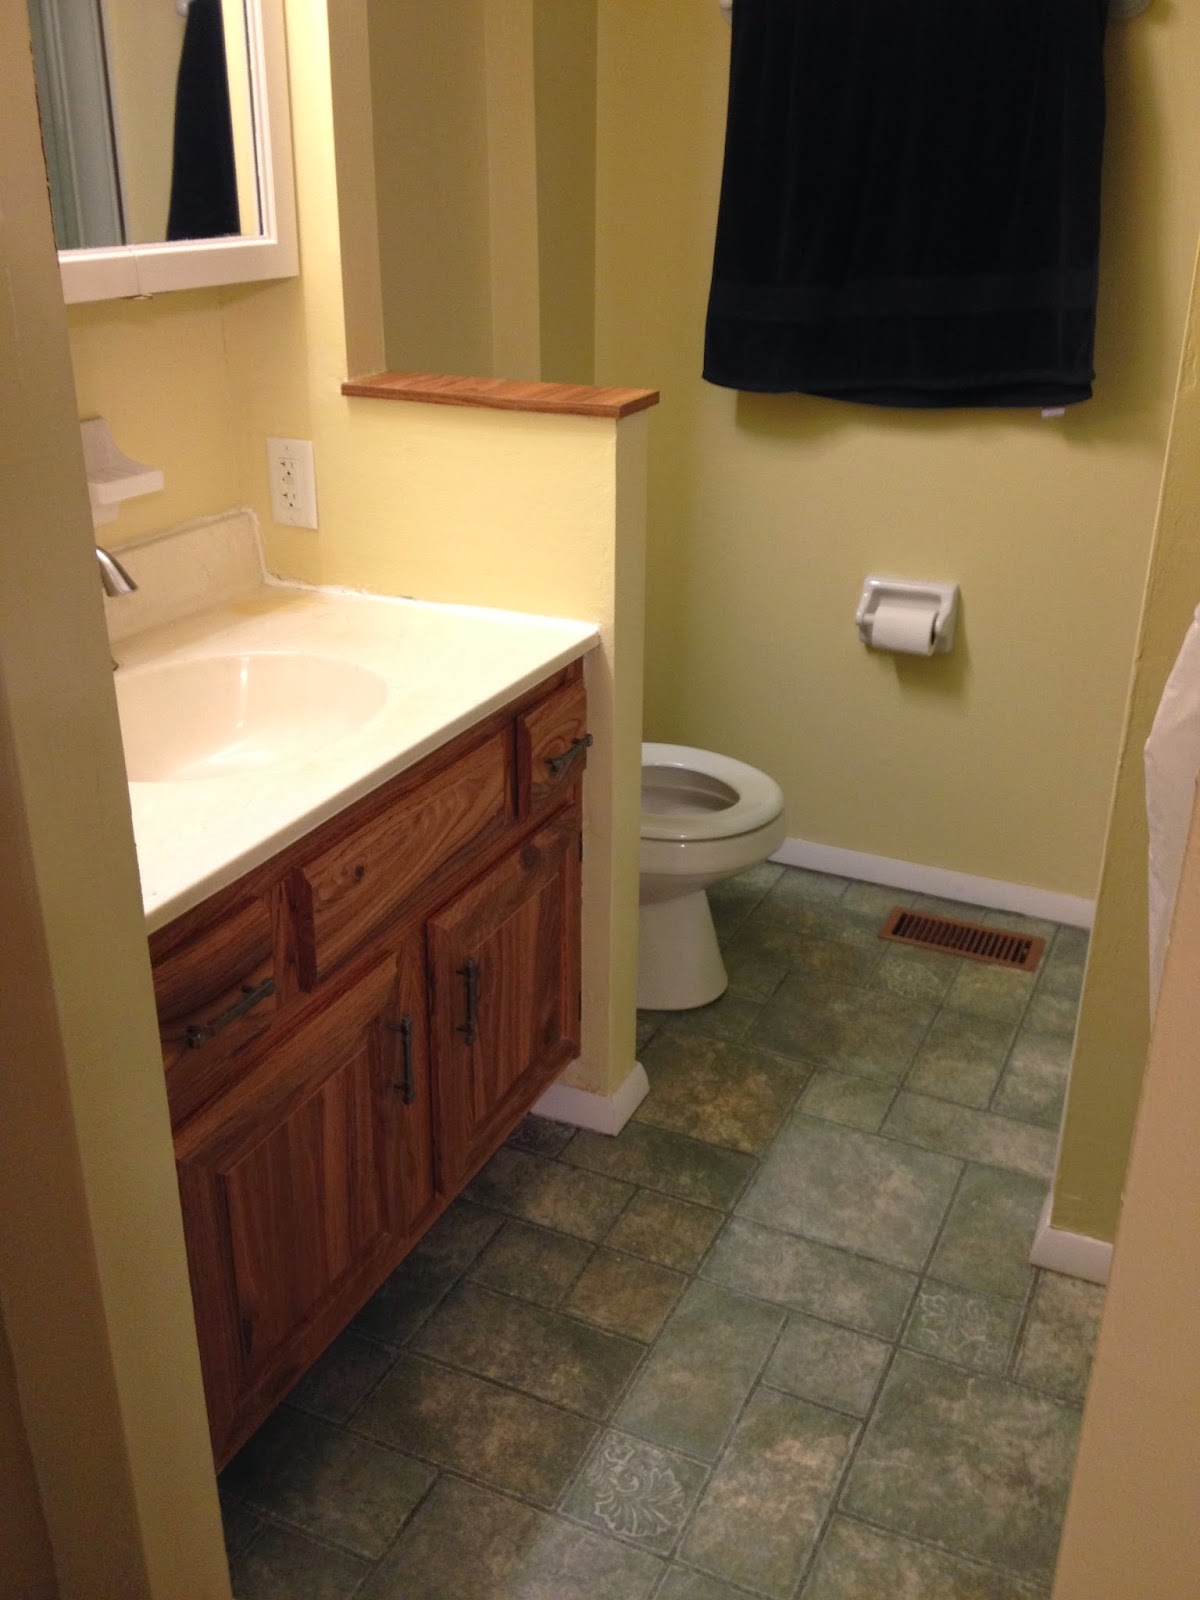 This Is A Small Bathroom: 30 Square Feet Of Open Floor Space. I Understand  Why They Only Had One Towel Holder Because That Is The Only Open Wall Space  Big ...